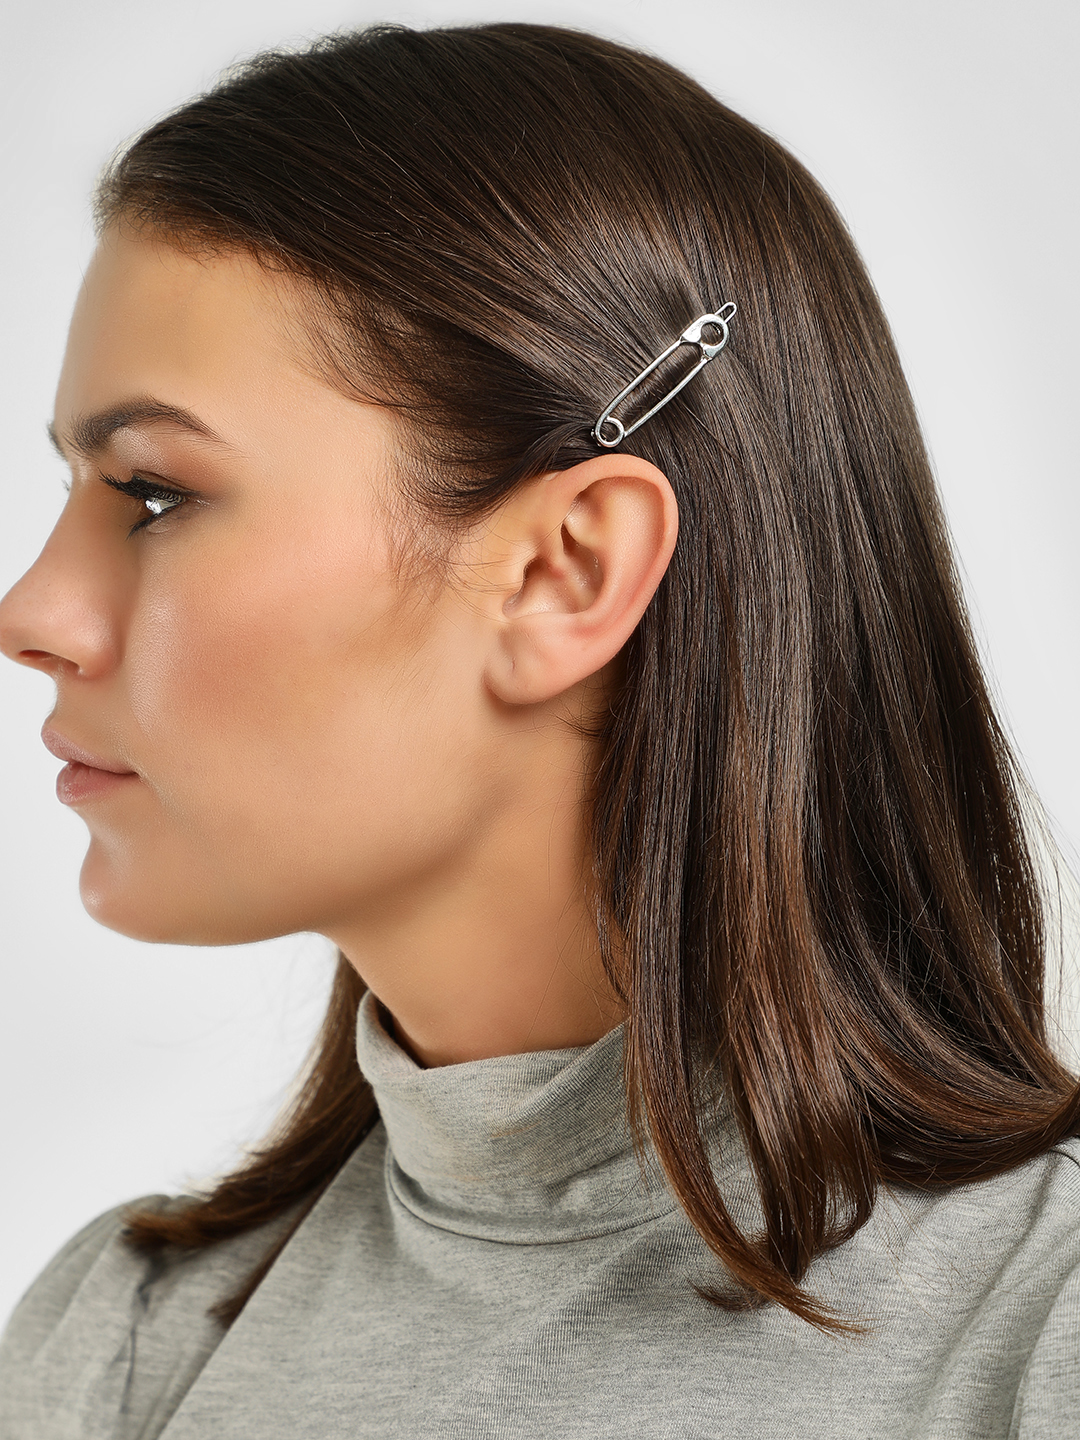 Style Fiesta Silver Safety Pin Hair Clip 1